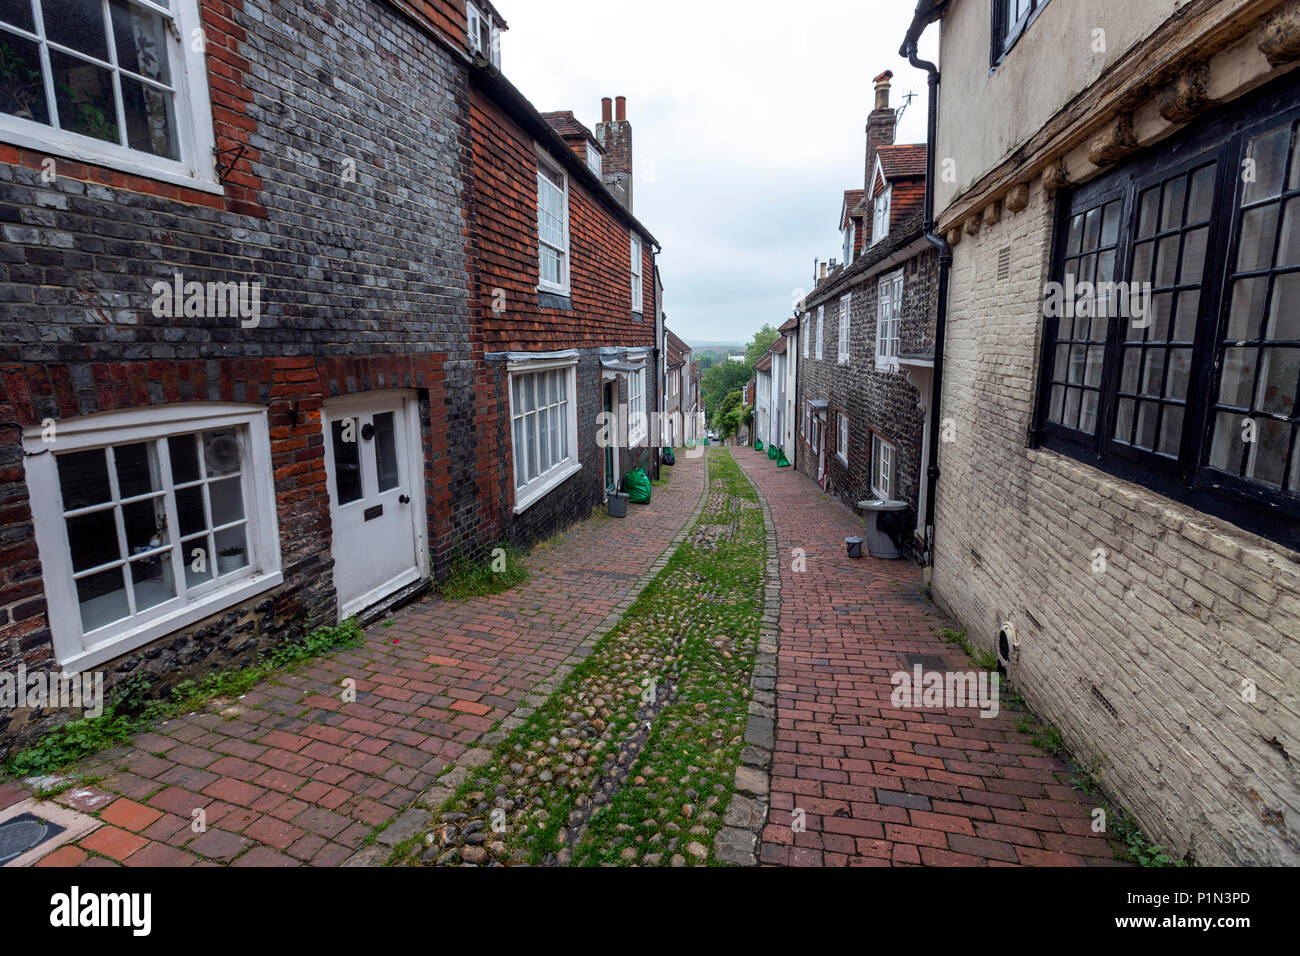 Narrow Keere St in Lewes, East Sussex, England, UK Stock Photo